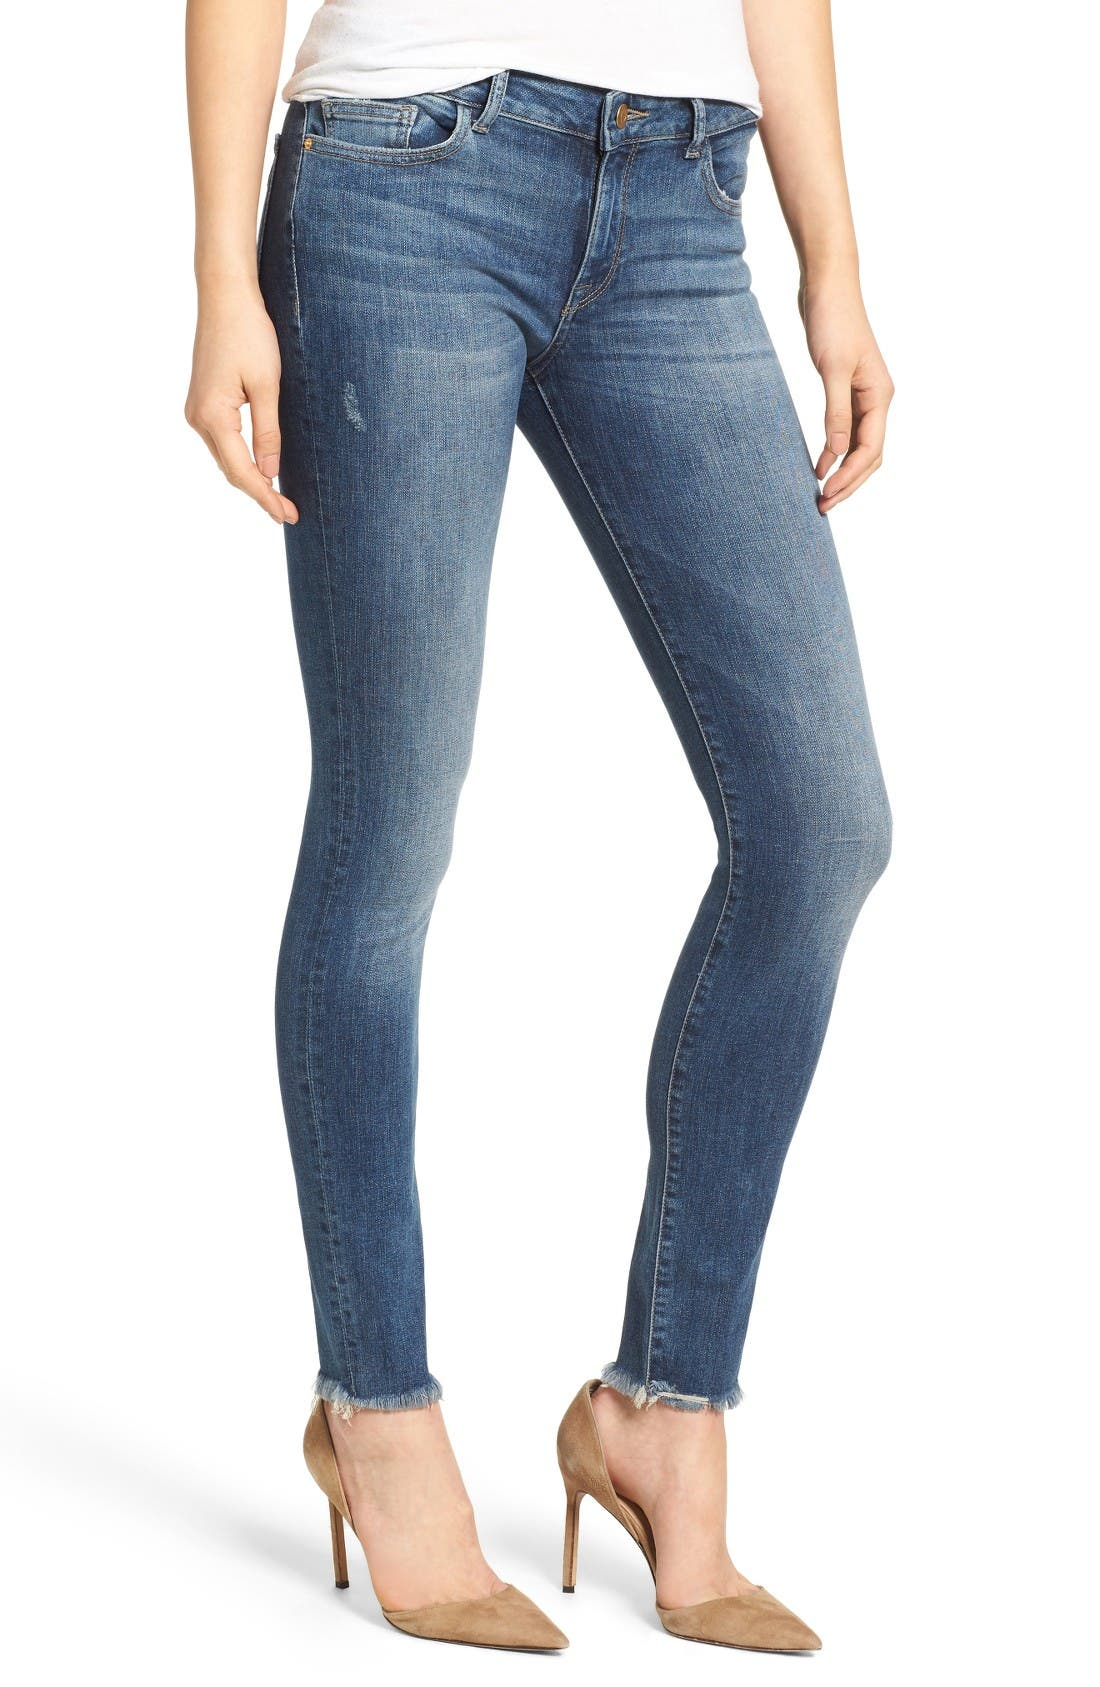 Main Image - DL1961 Florence Instasculpt Skinny Jeans (Wicked)